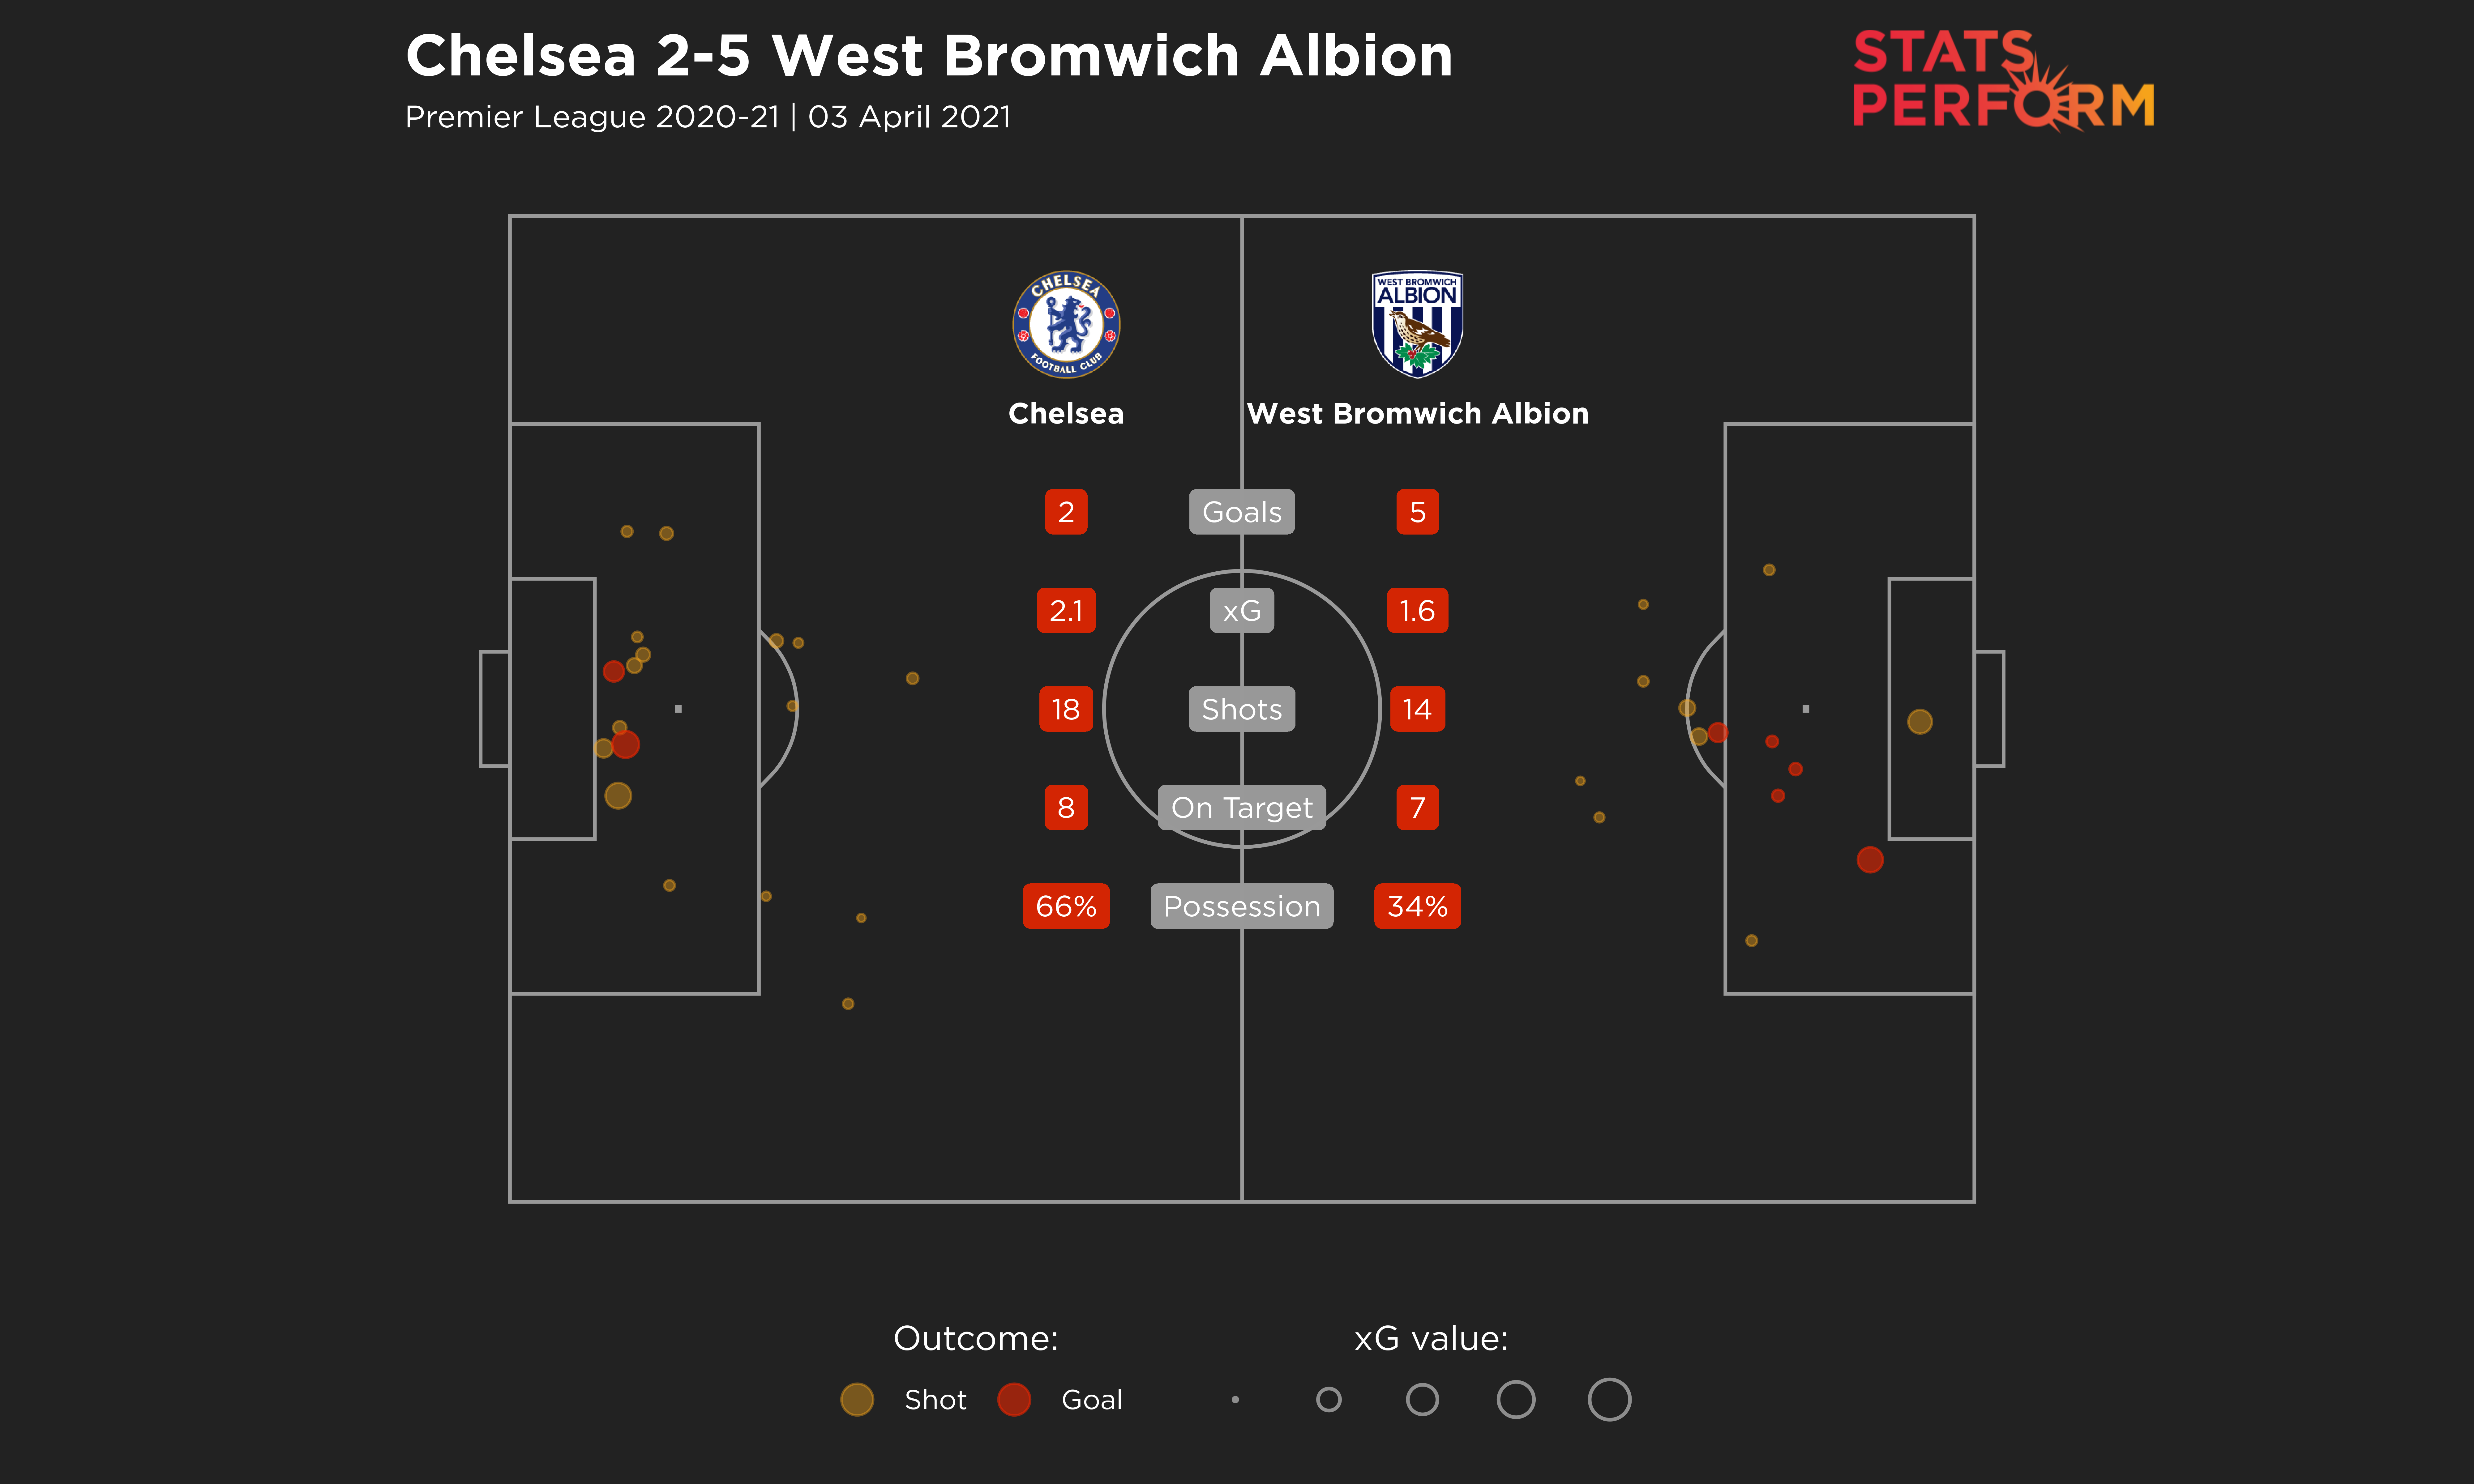 Despite scoring five times, West Brom's xG value on Saturday was only 1.6